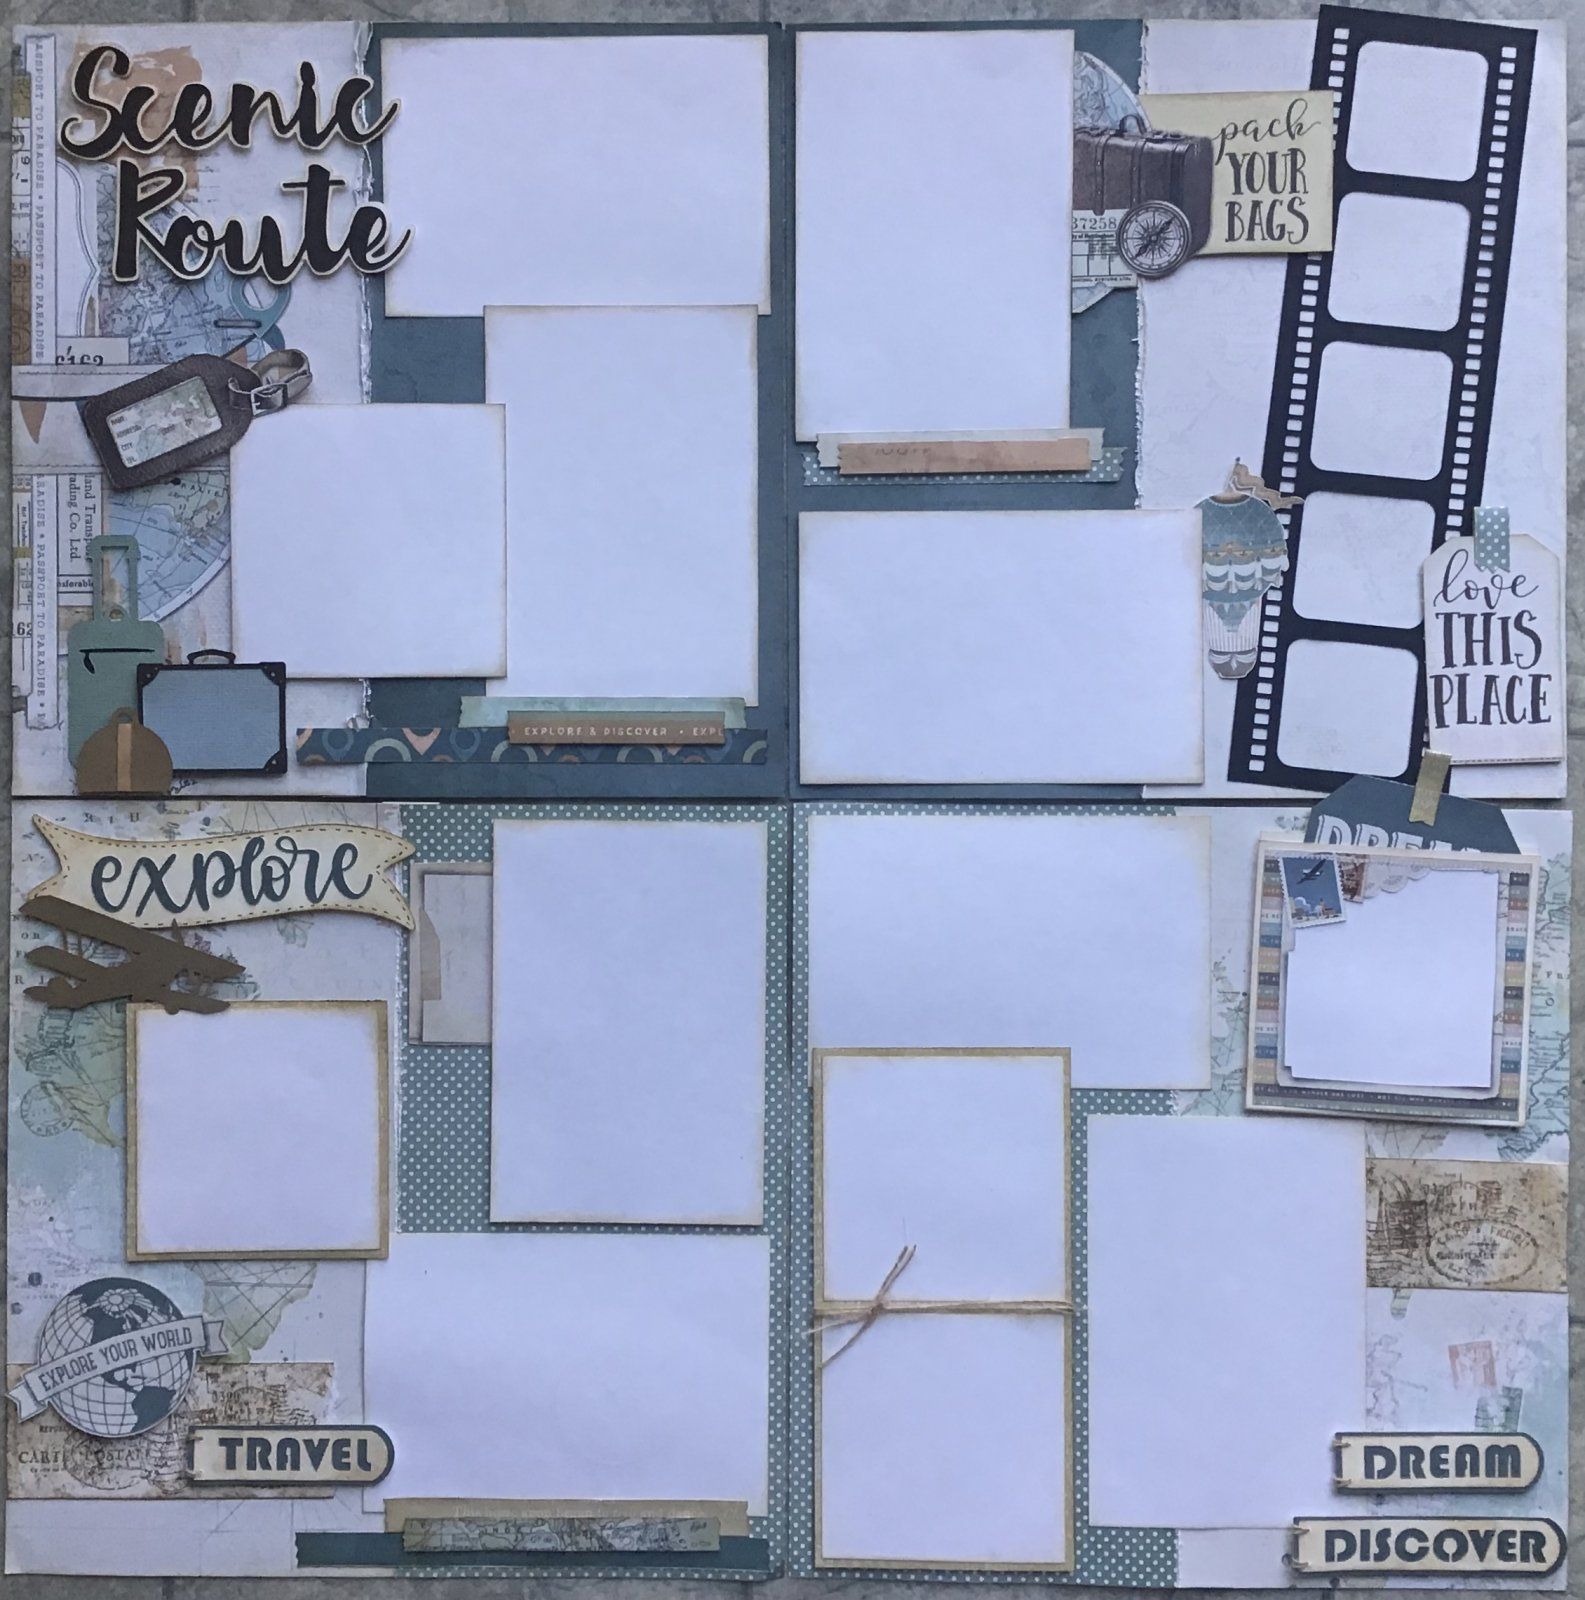 Scenic Route Travel Layout two double pages